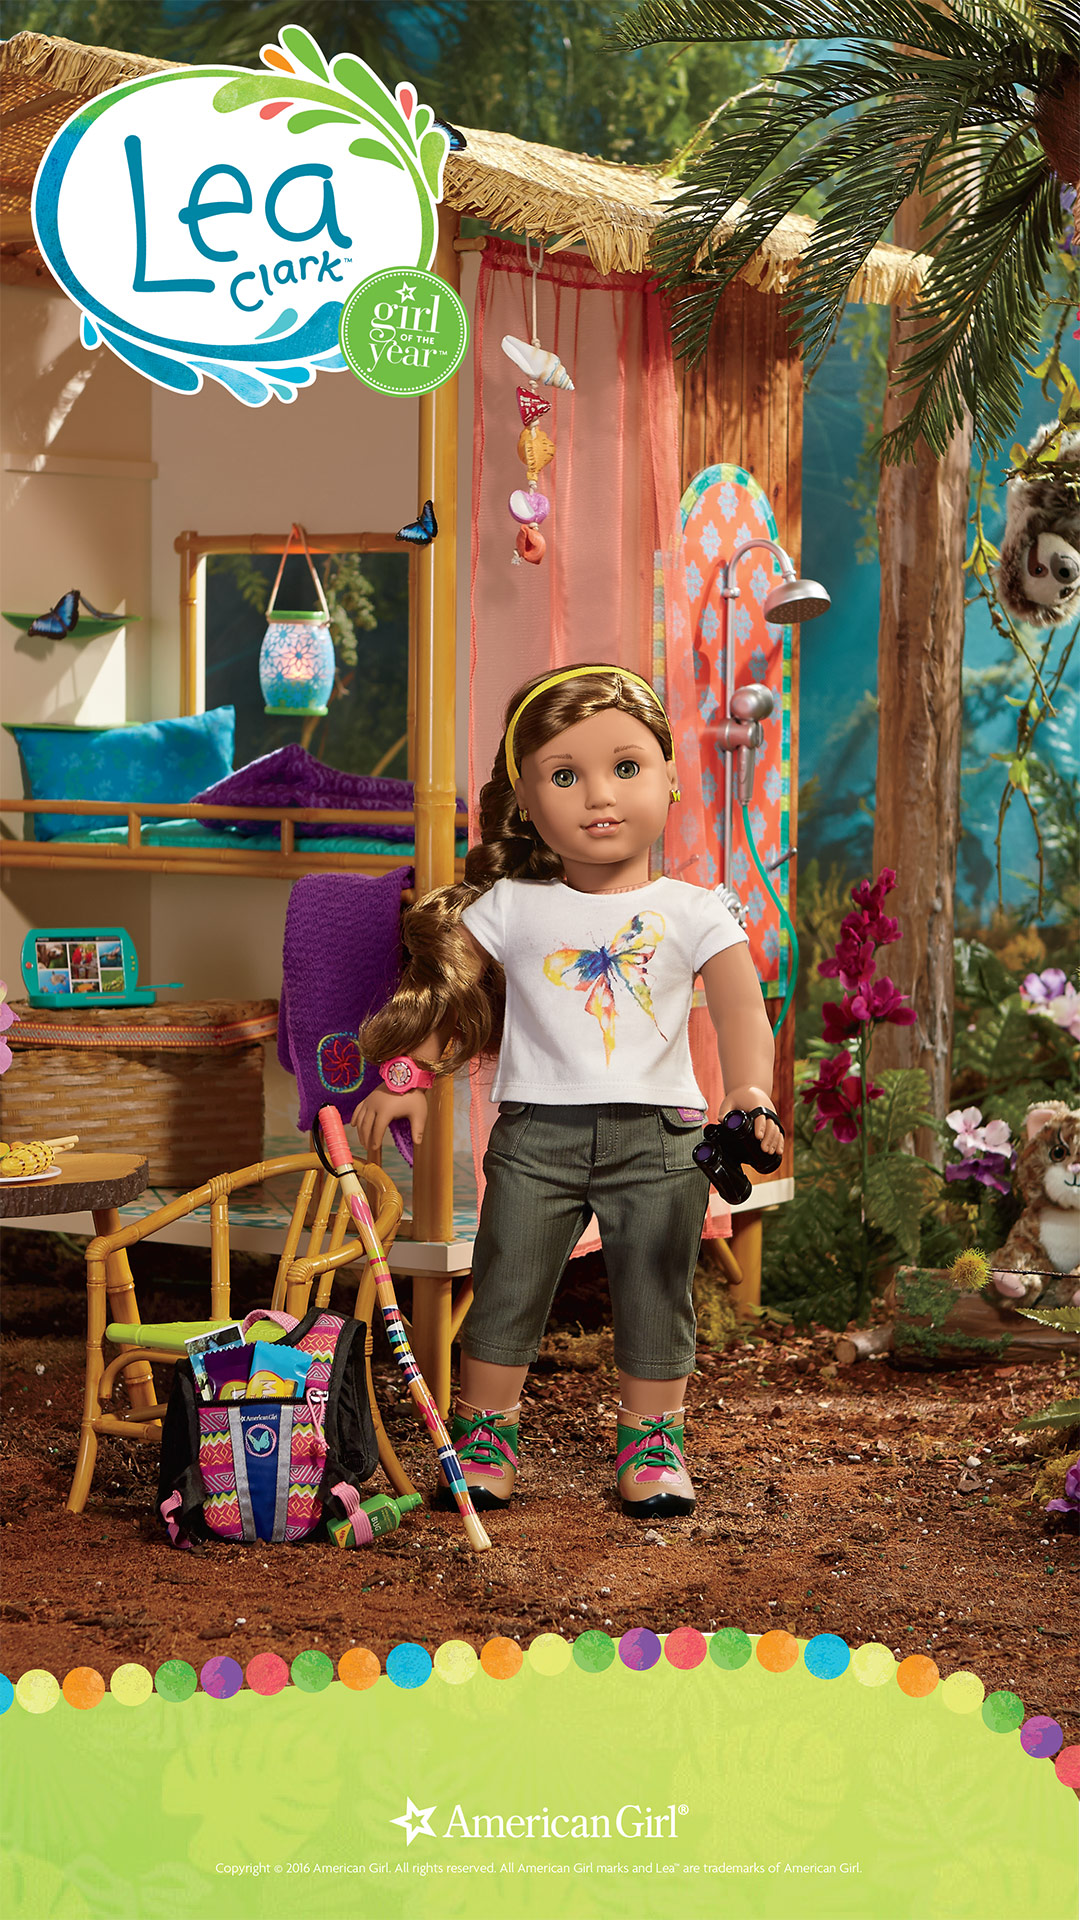 american girl wallpaper  Lea Clark | 2016 | Girl of the Year | Play at American Girl